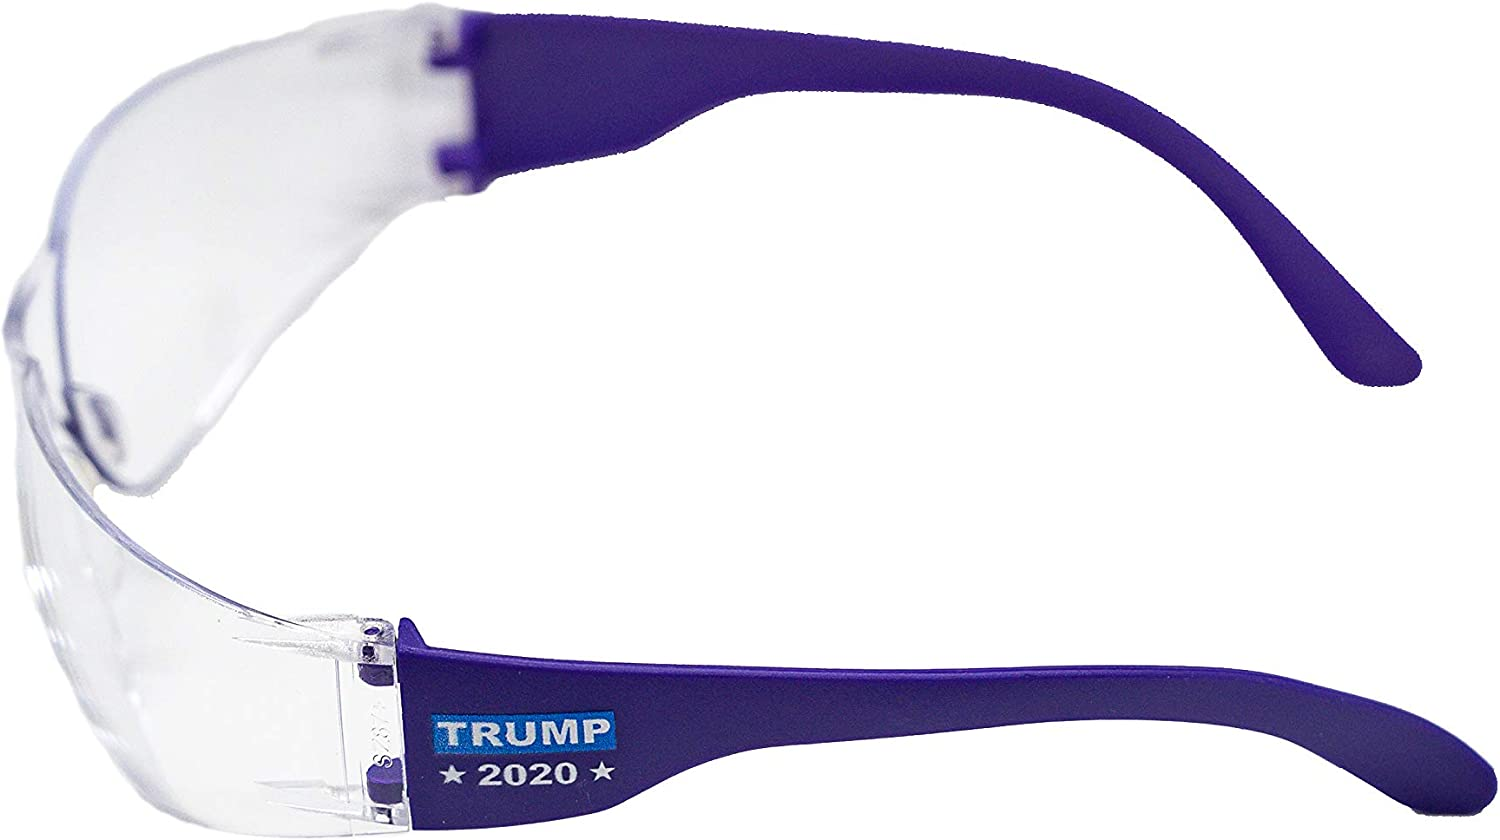 Green Frames with Clear Lenses SSP Eyewear Trump 2020 Election Safety Glasses